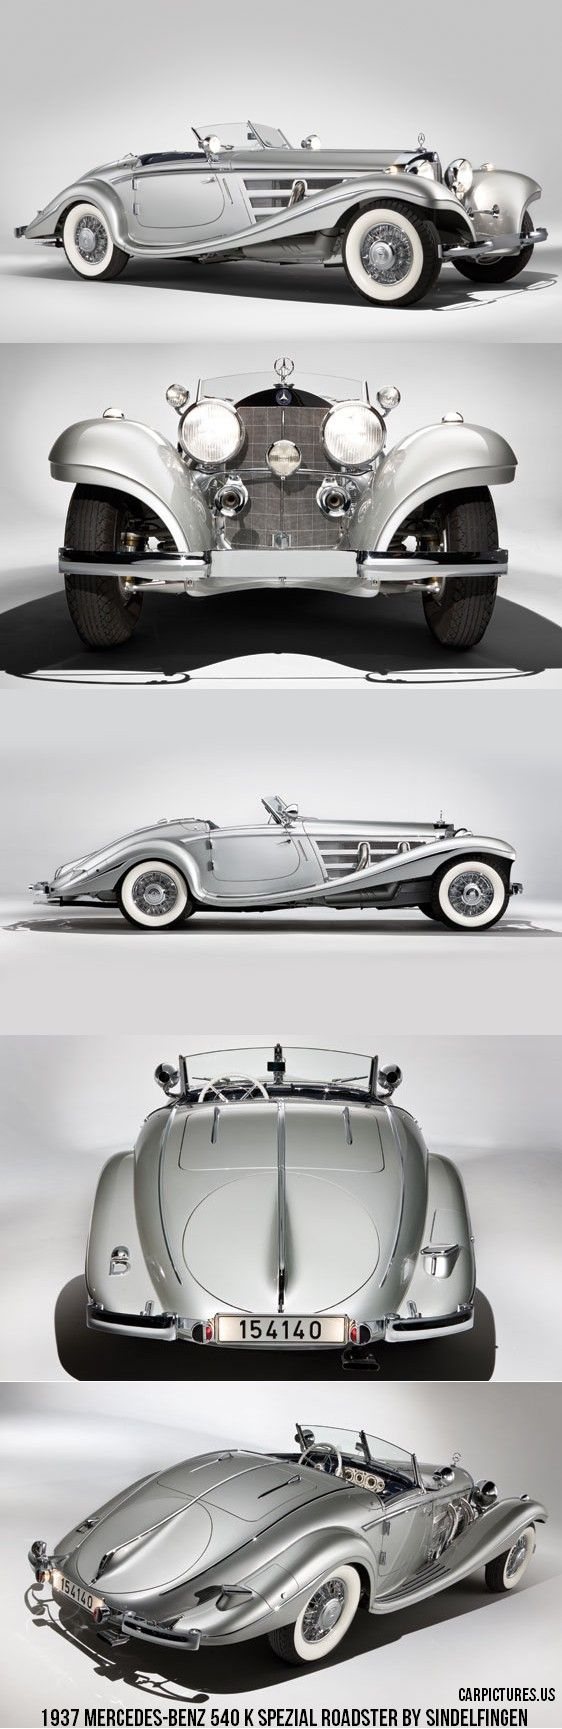 1937 Mercedes-Benz 540 K Spezial Roadster by Sindelfingen... Yes please!